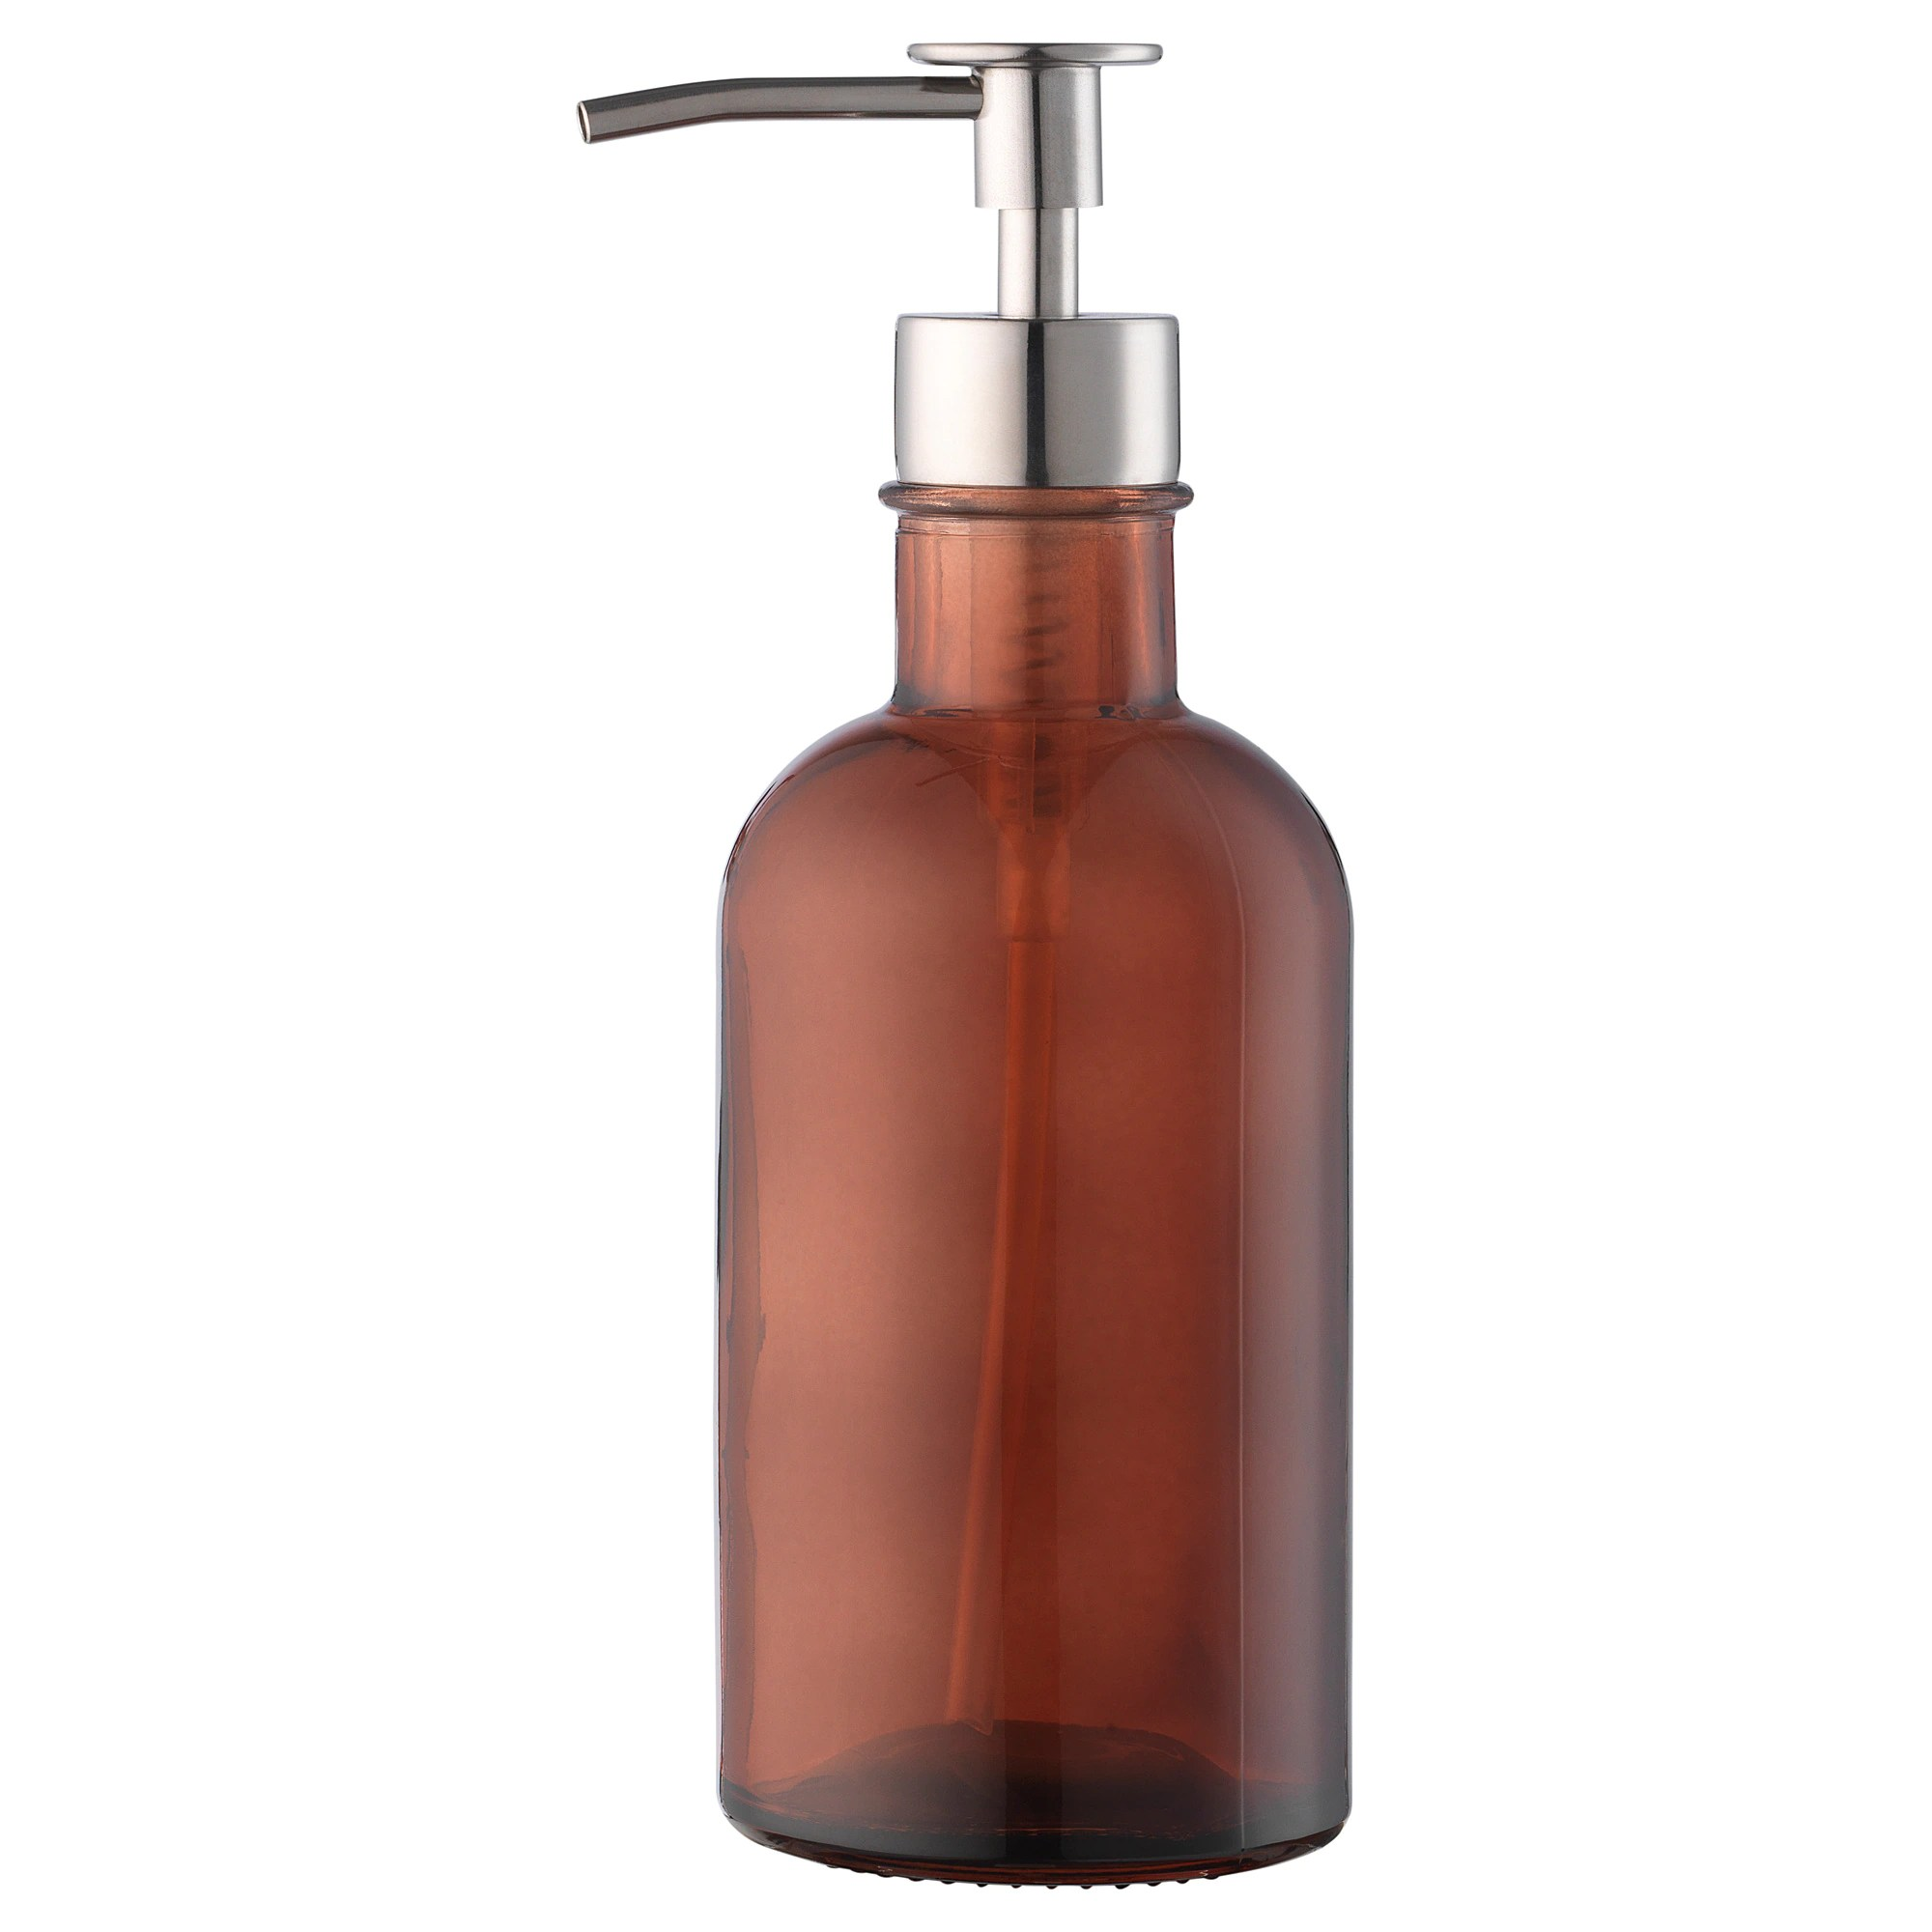 Unique Hand Soap Dispenser SegersjÖn Soap Dispenser Brown